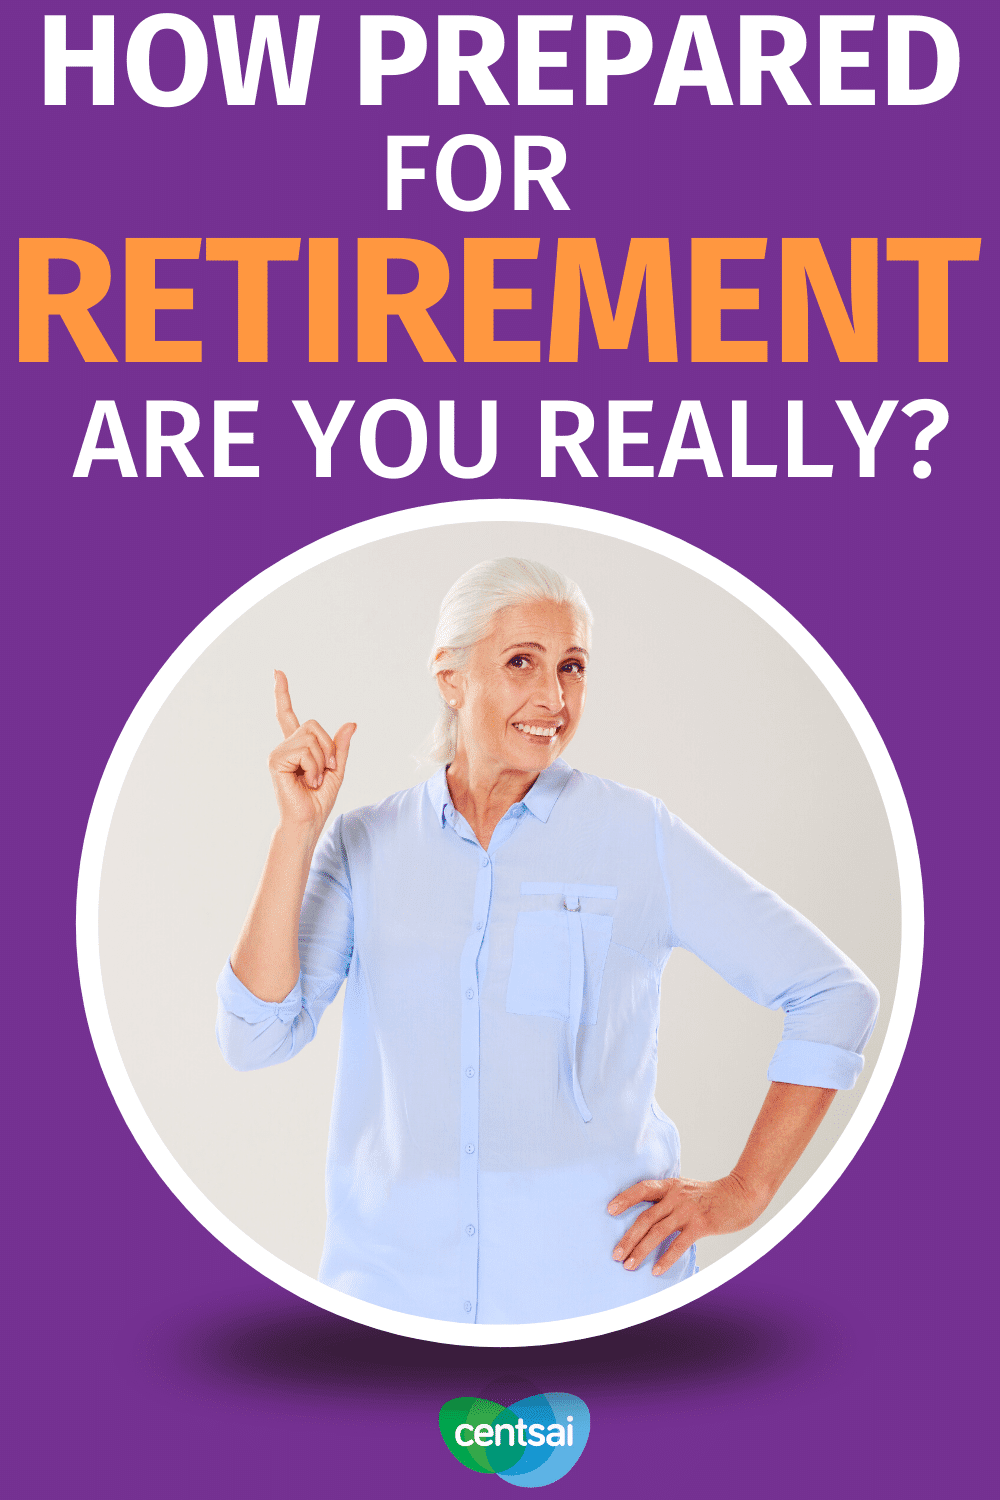 How Prepared for Retirement